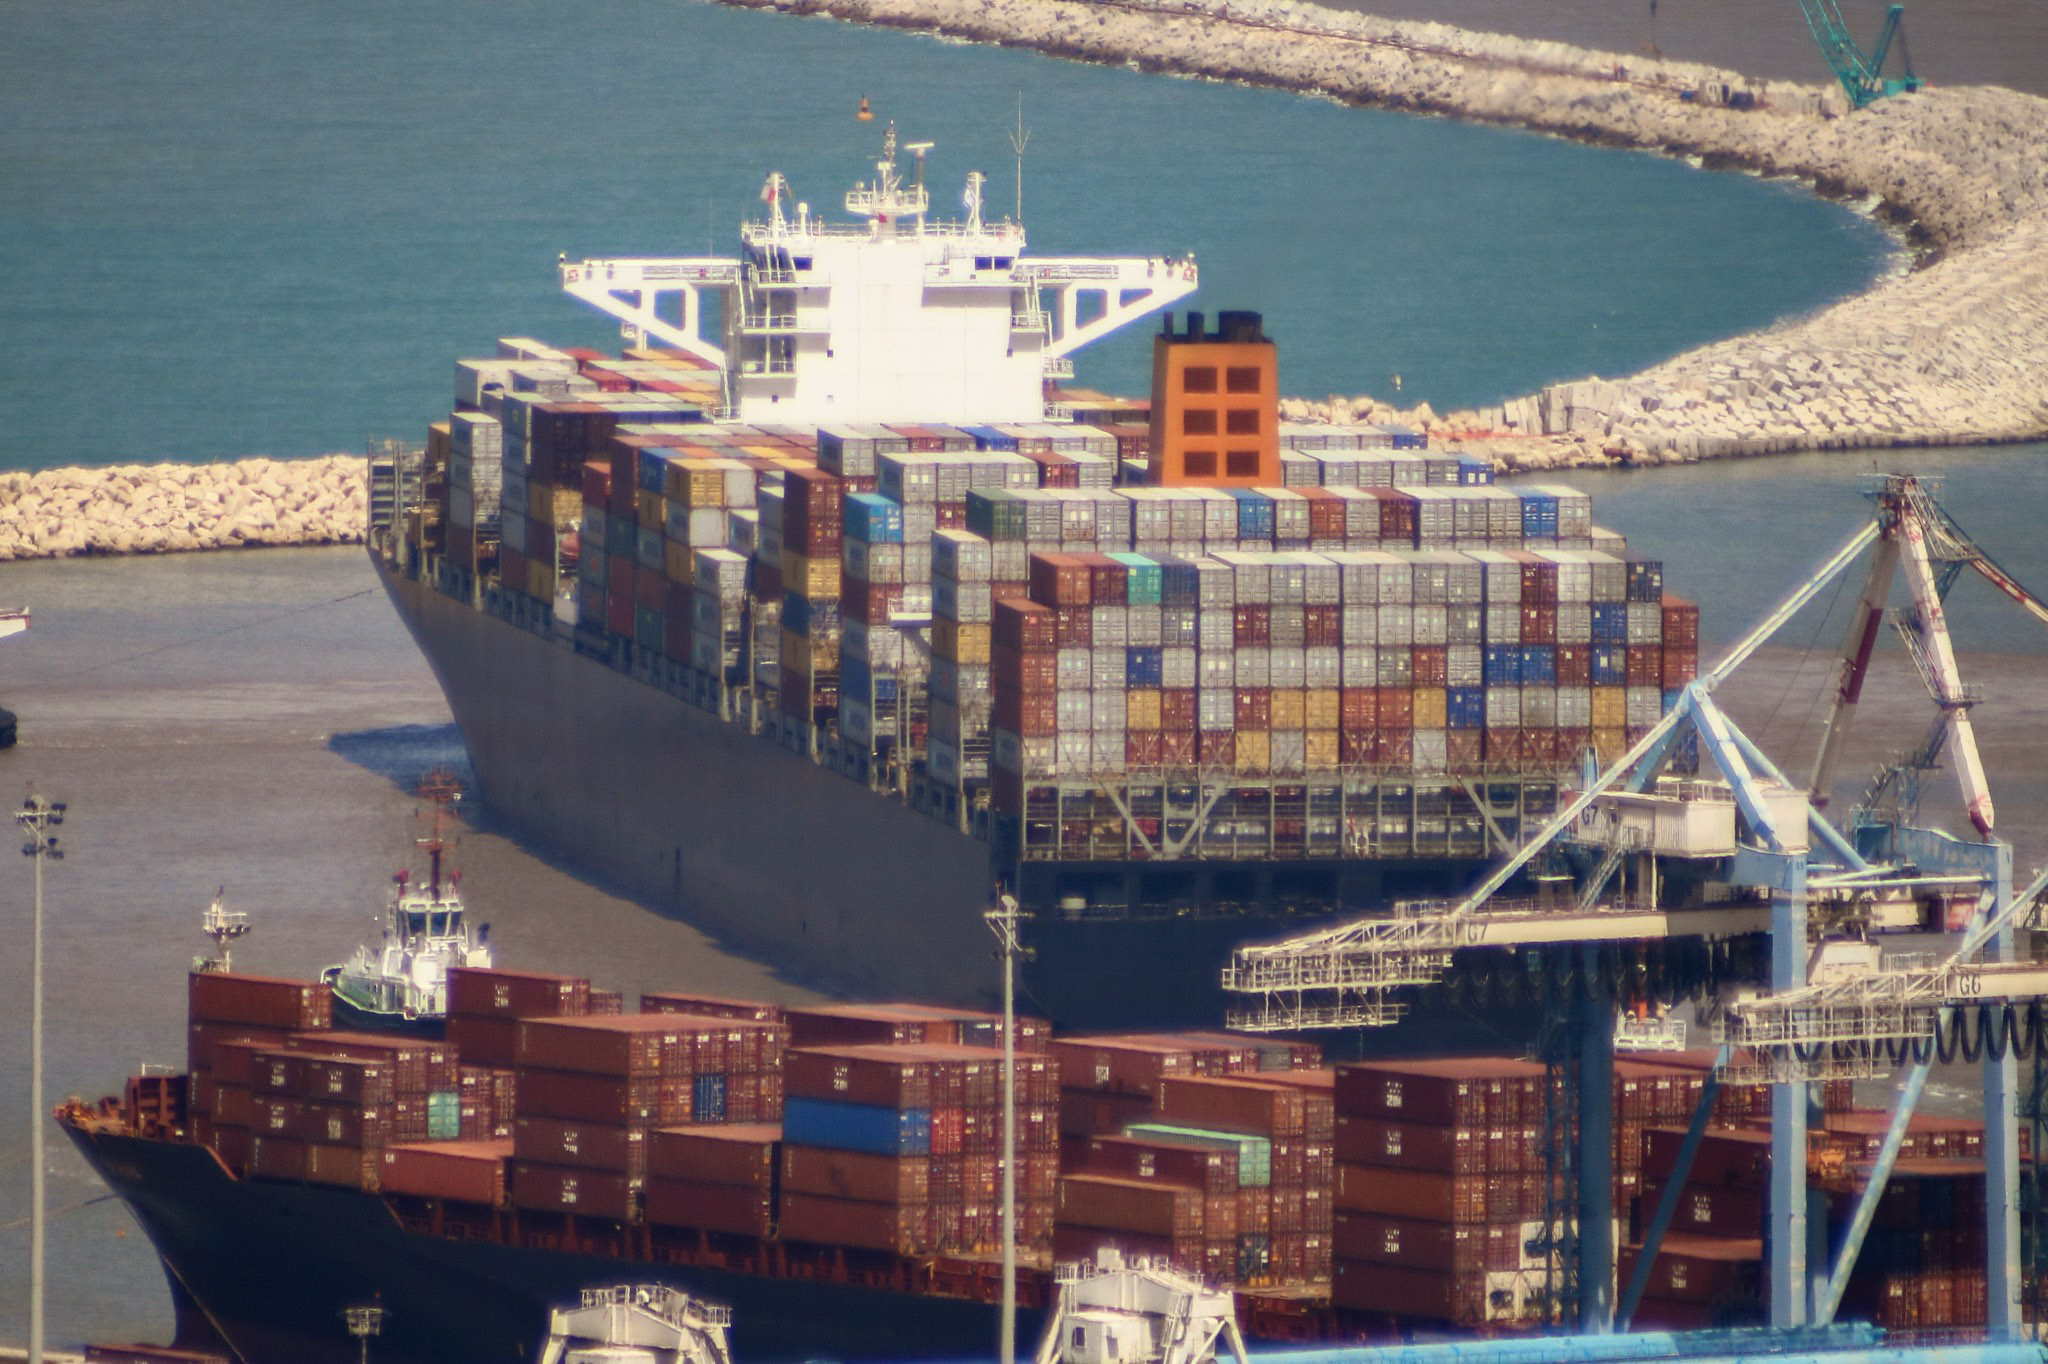 The report assesses the preparedness of the shipping industry to new emissions standards as low.